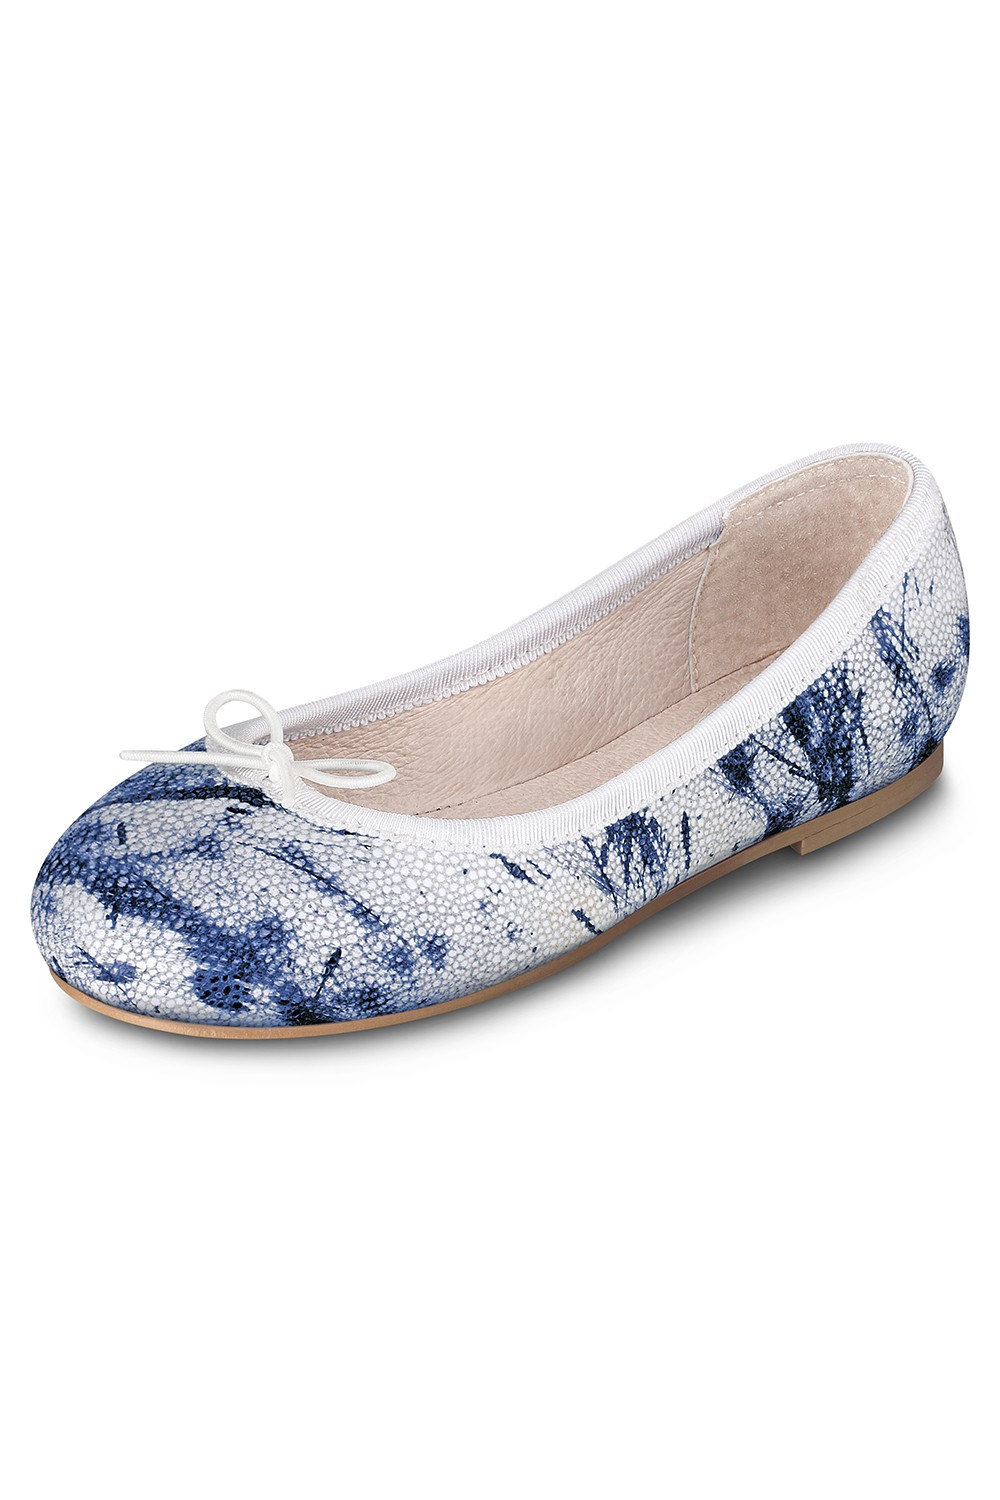 Belle Girls Ballet Flats Girls Fashion Shoes